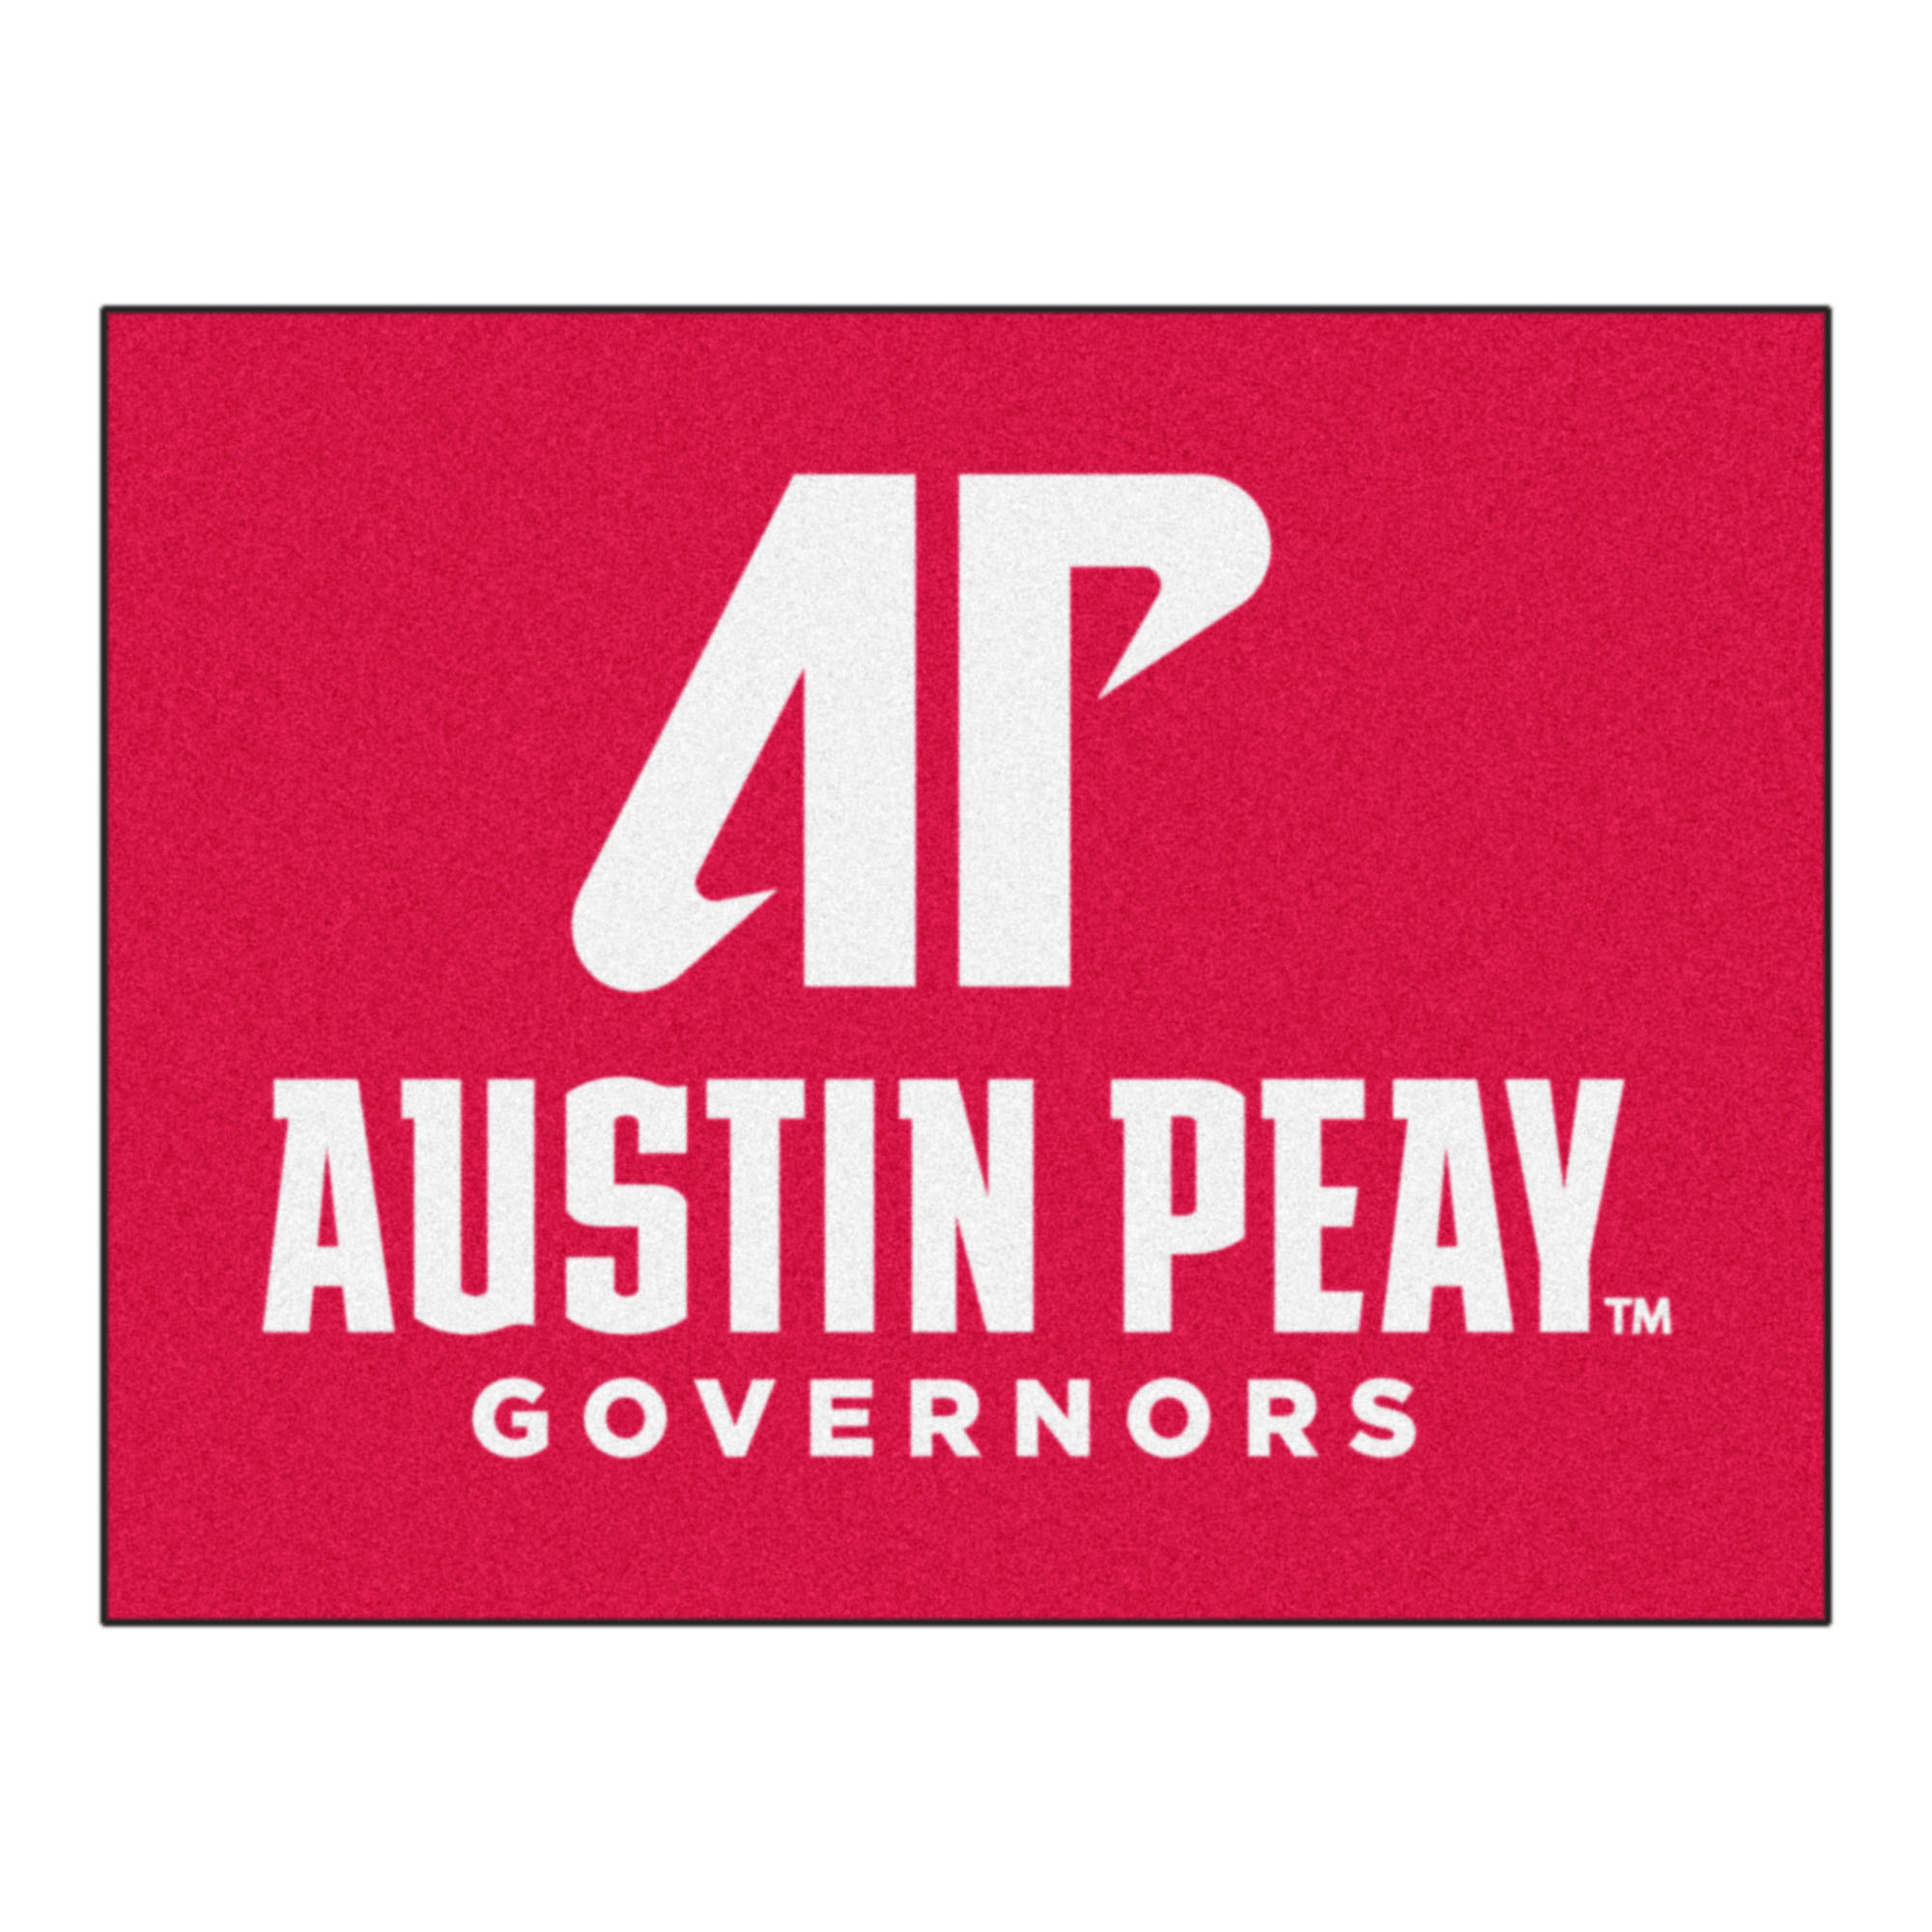 300 Fanmats College NCAA Austin Peay State University 33.75 Inch x 42.5 Inch Nylon Face durable Non-skid chromojet-printed washable Rectangular All Star Mat